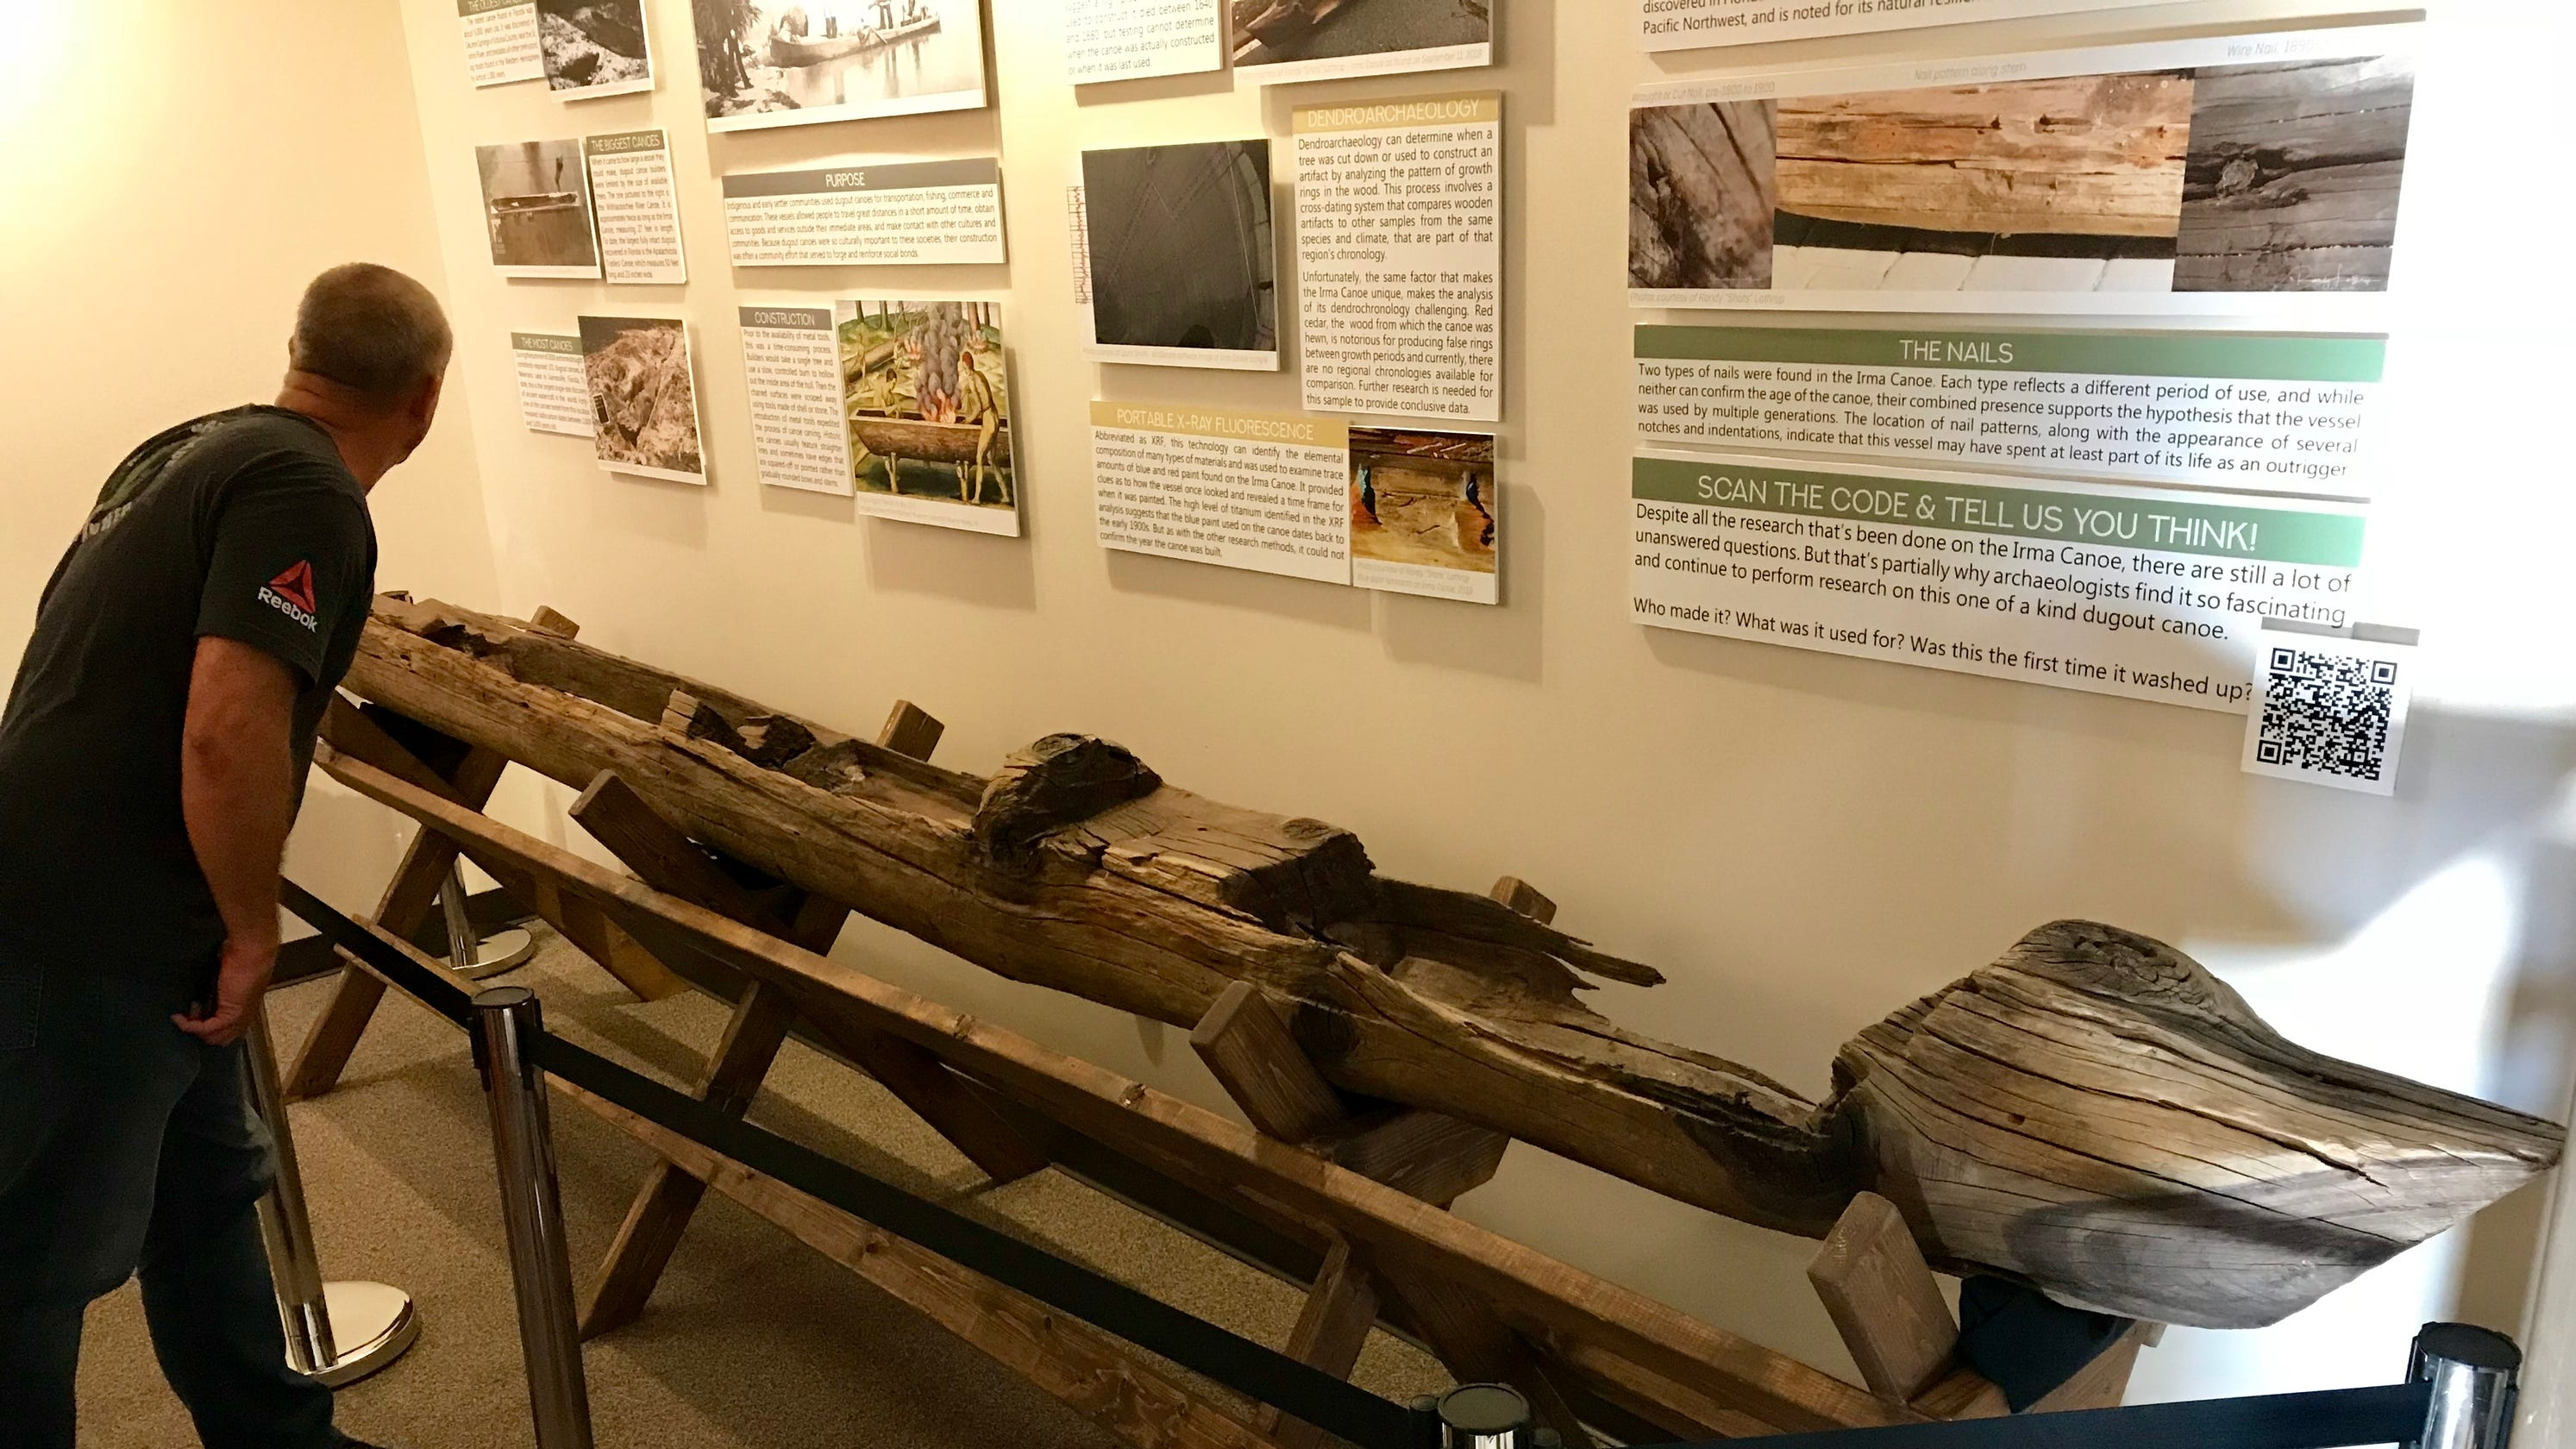 Mystery canoe goes on display in Cape Canaveral: Was it made from a